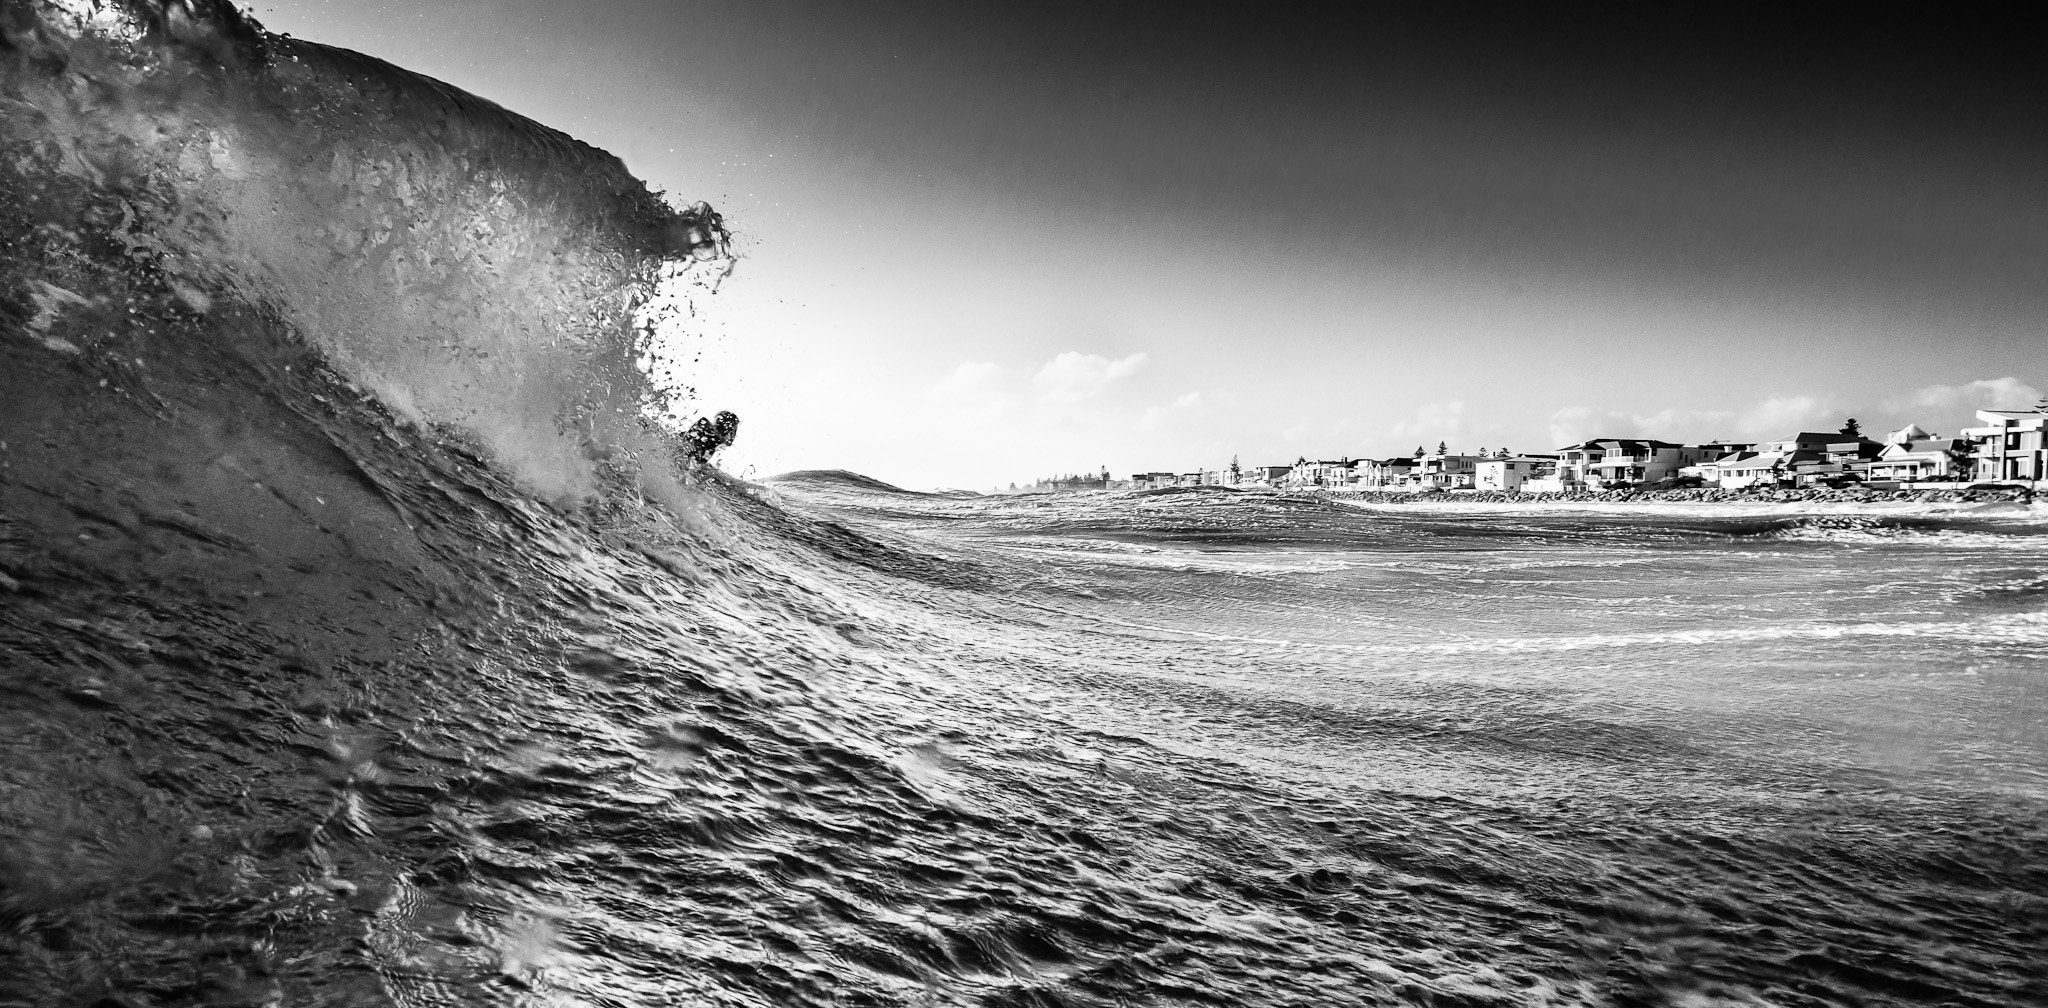 Photograph 366 Days of 2012, Day 236 - Storm Surge by Robert Rath on 500px